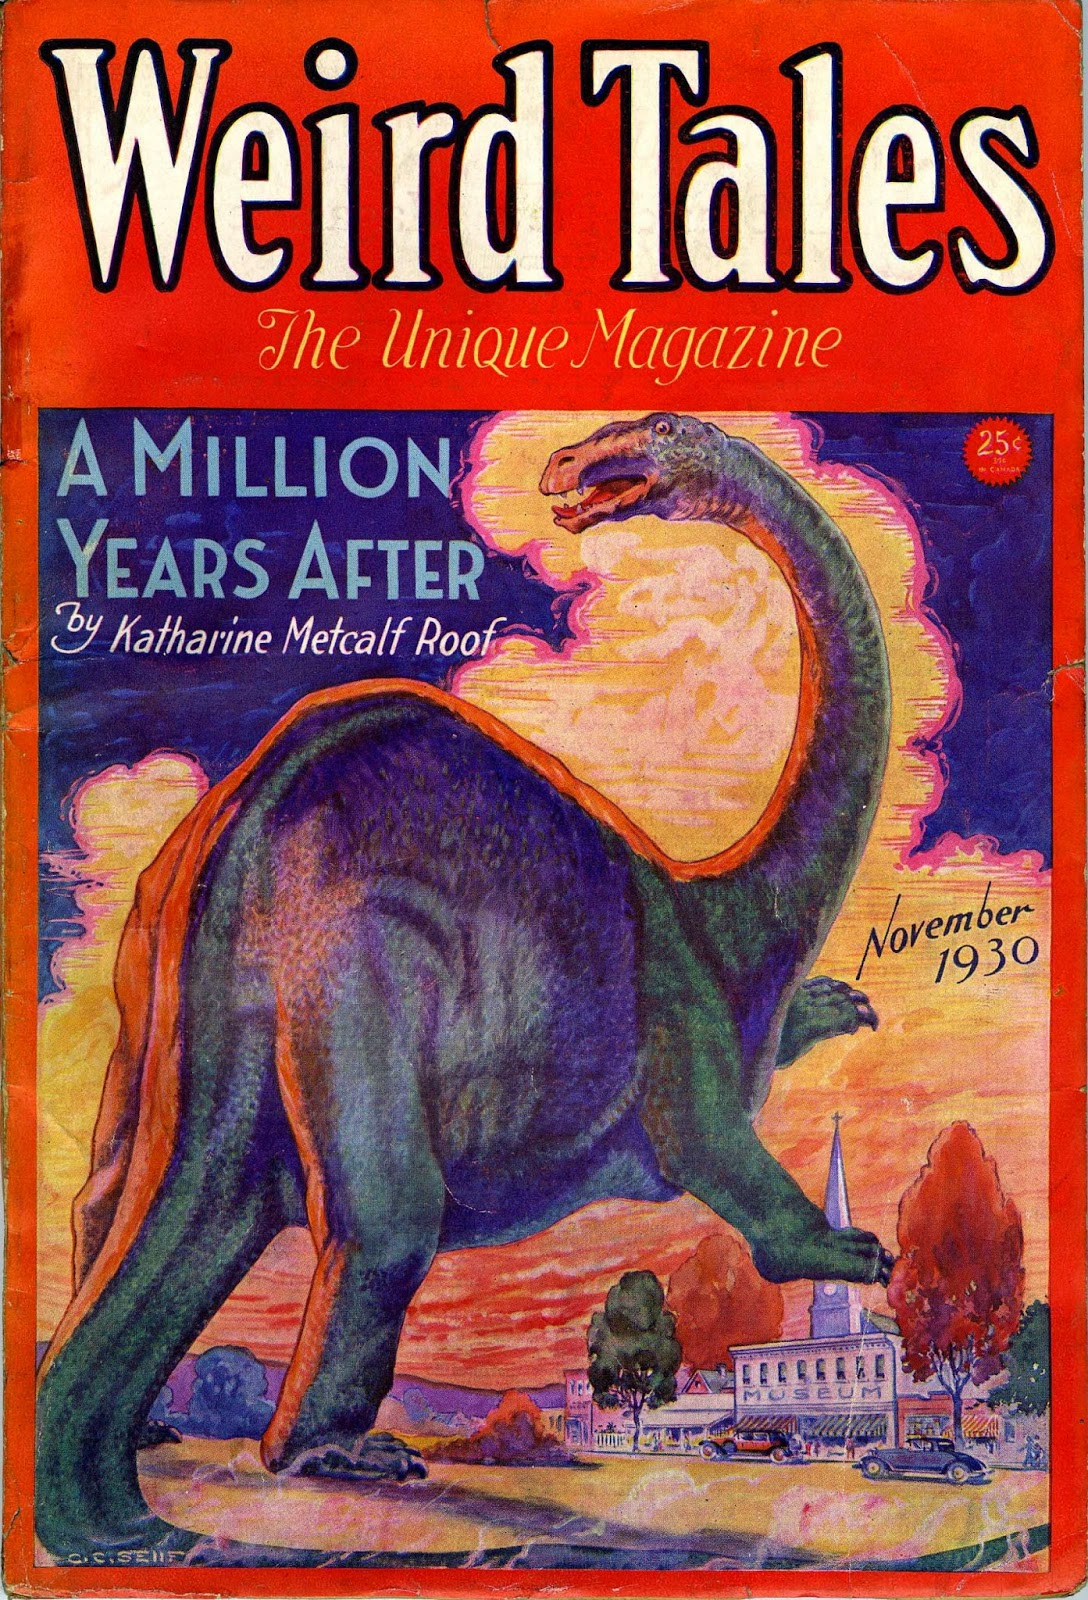 pulpcovers.com/a-million-years-after/